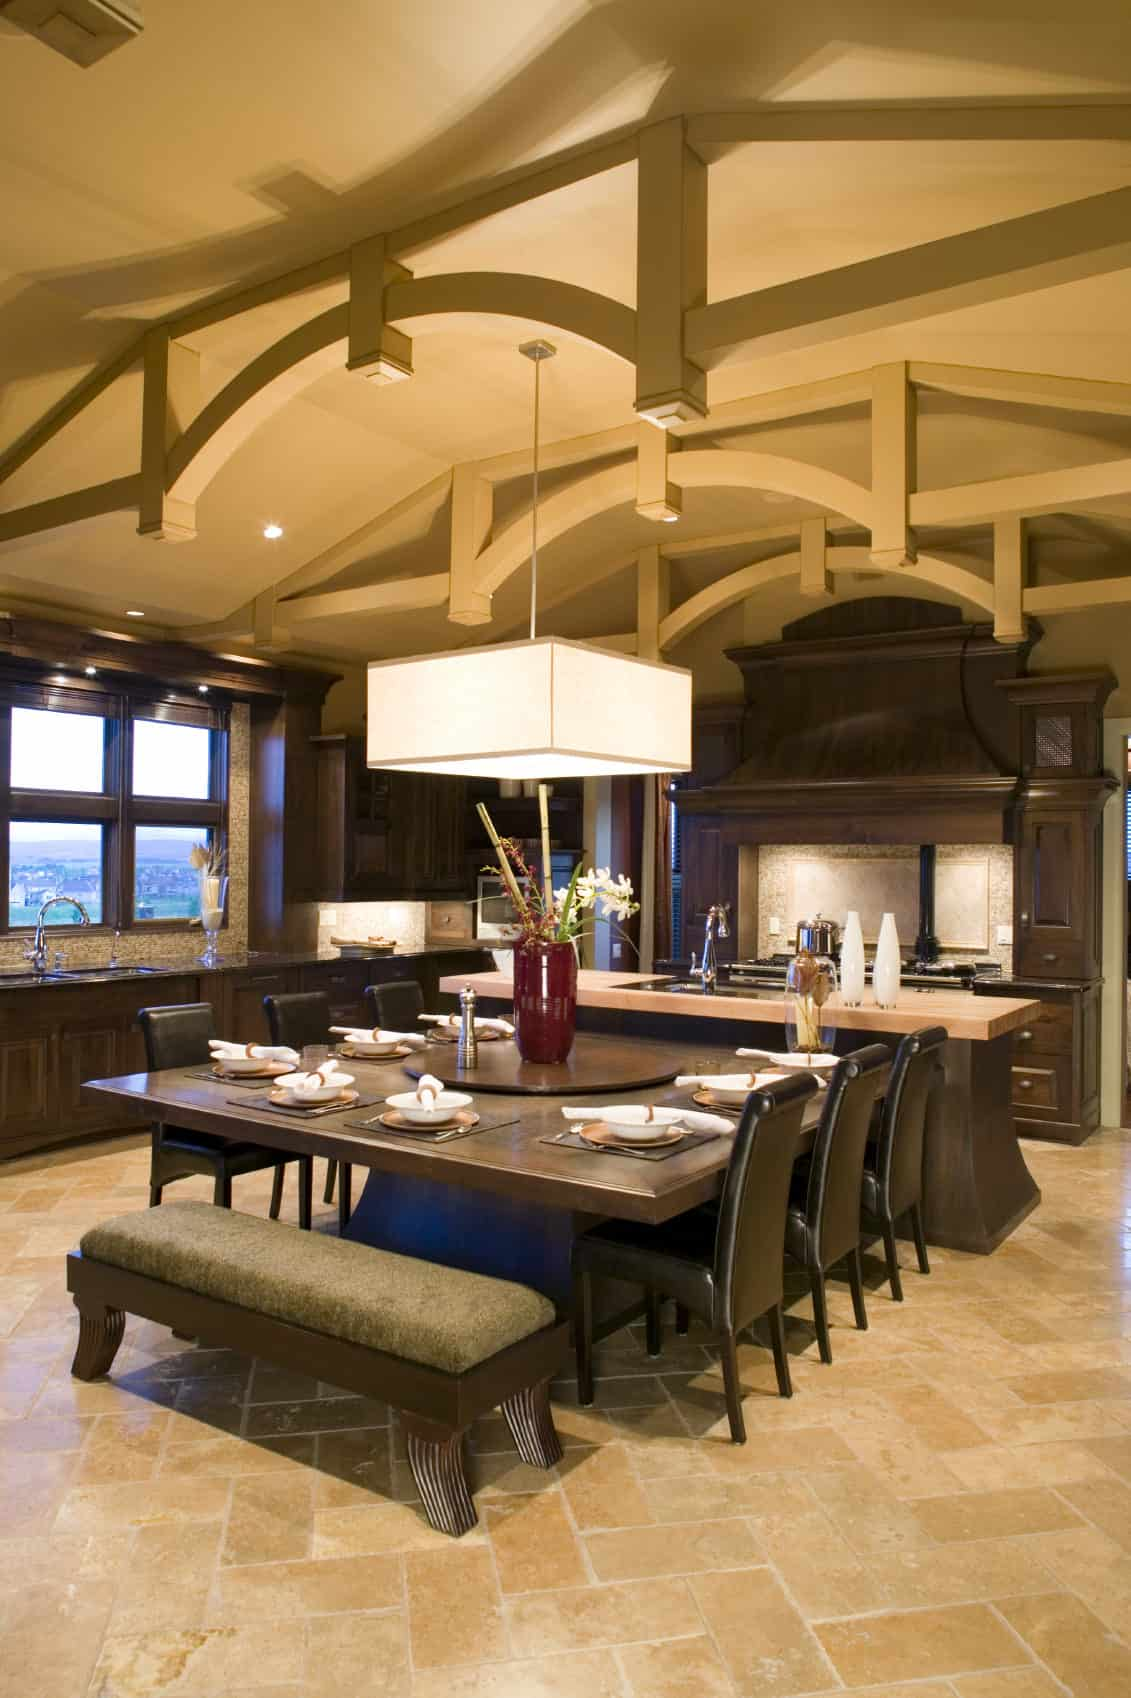 Massive dine-in-kitchen with beam ceiling, large pendant lighting and tile flooring.